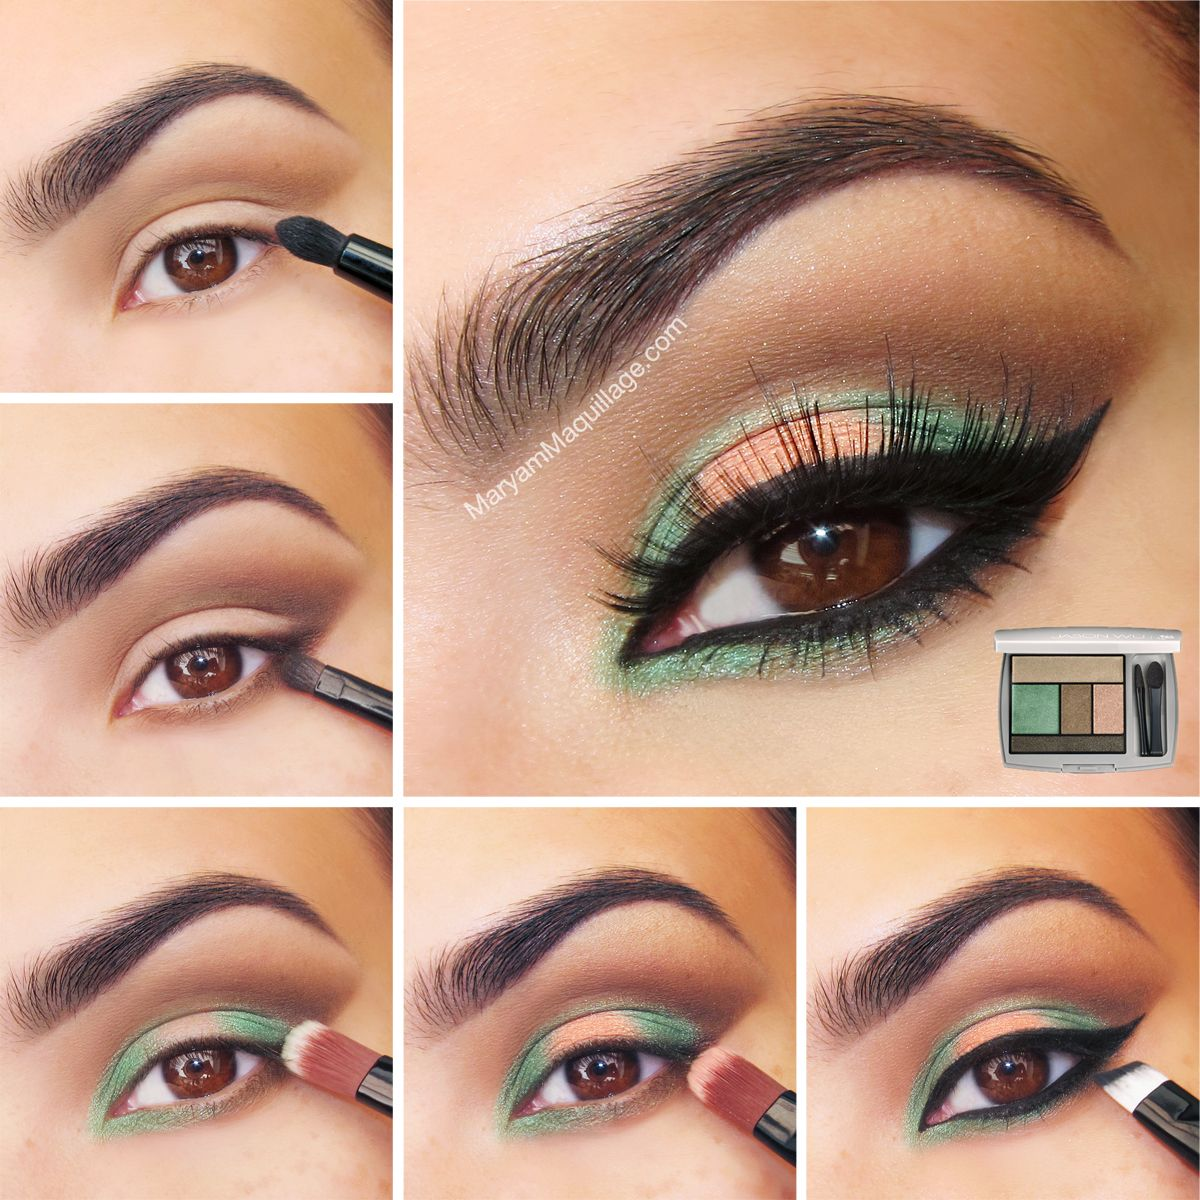 For fashionably fabulous eyes try maryams tutorial using the peach and green eye makeup tutorial for brown eyes beauty betsi got hazel green eyes im thinking this would work great too baditri Choice Image